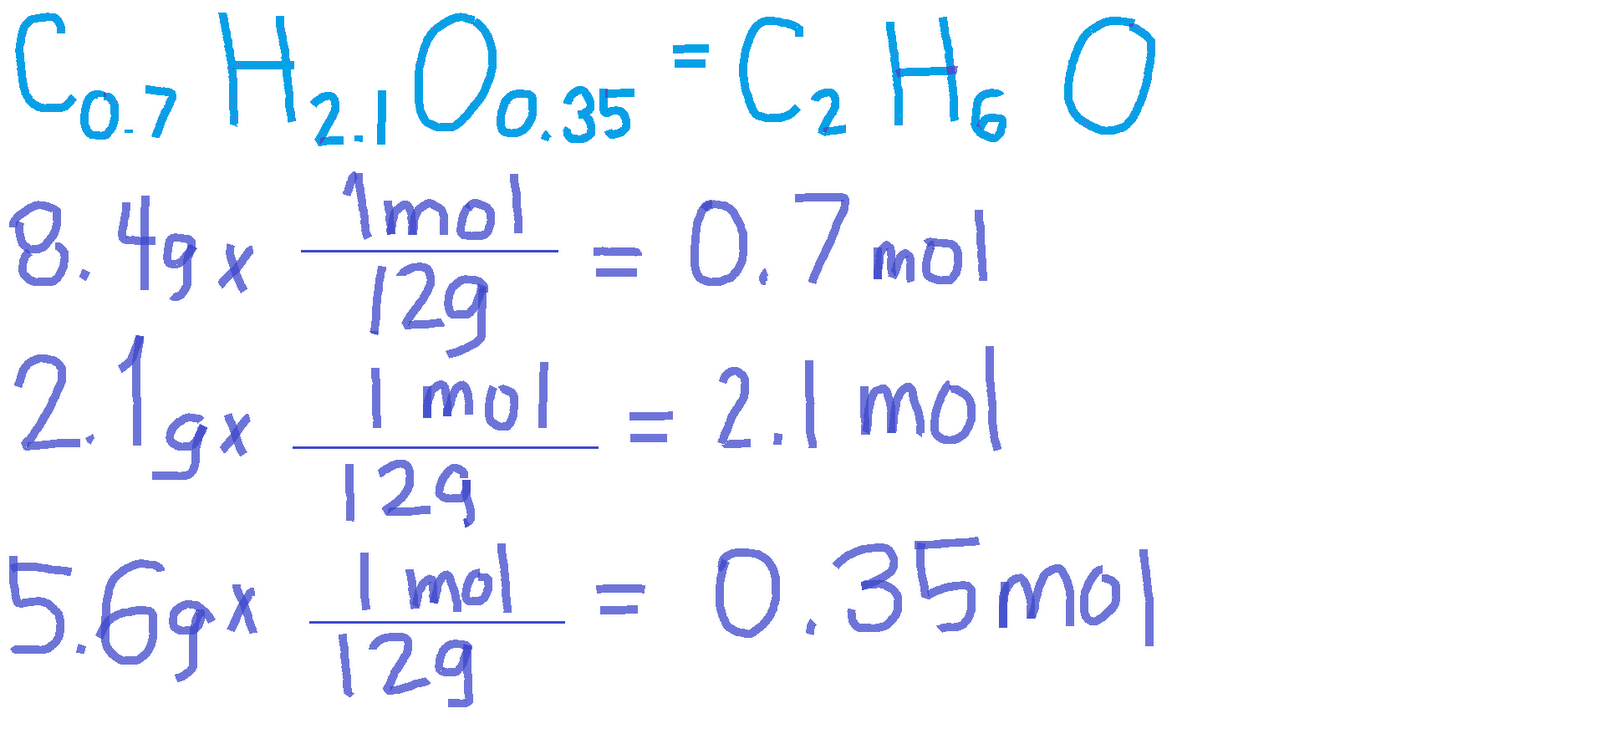 How To Find Molar Mass Of An Element Lowongan Kerja Indonesia Example empirical How To Find Molar Mass Of An Element